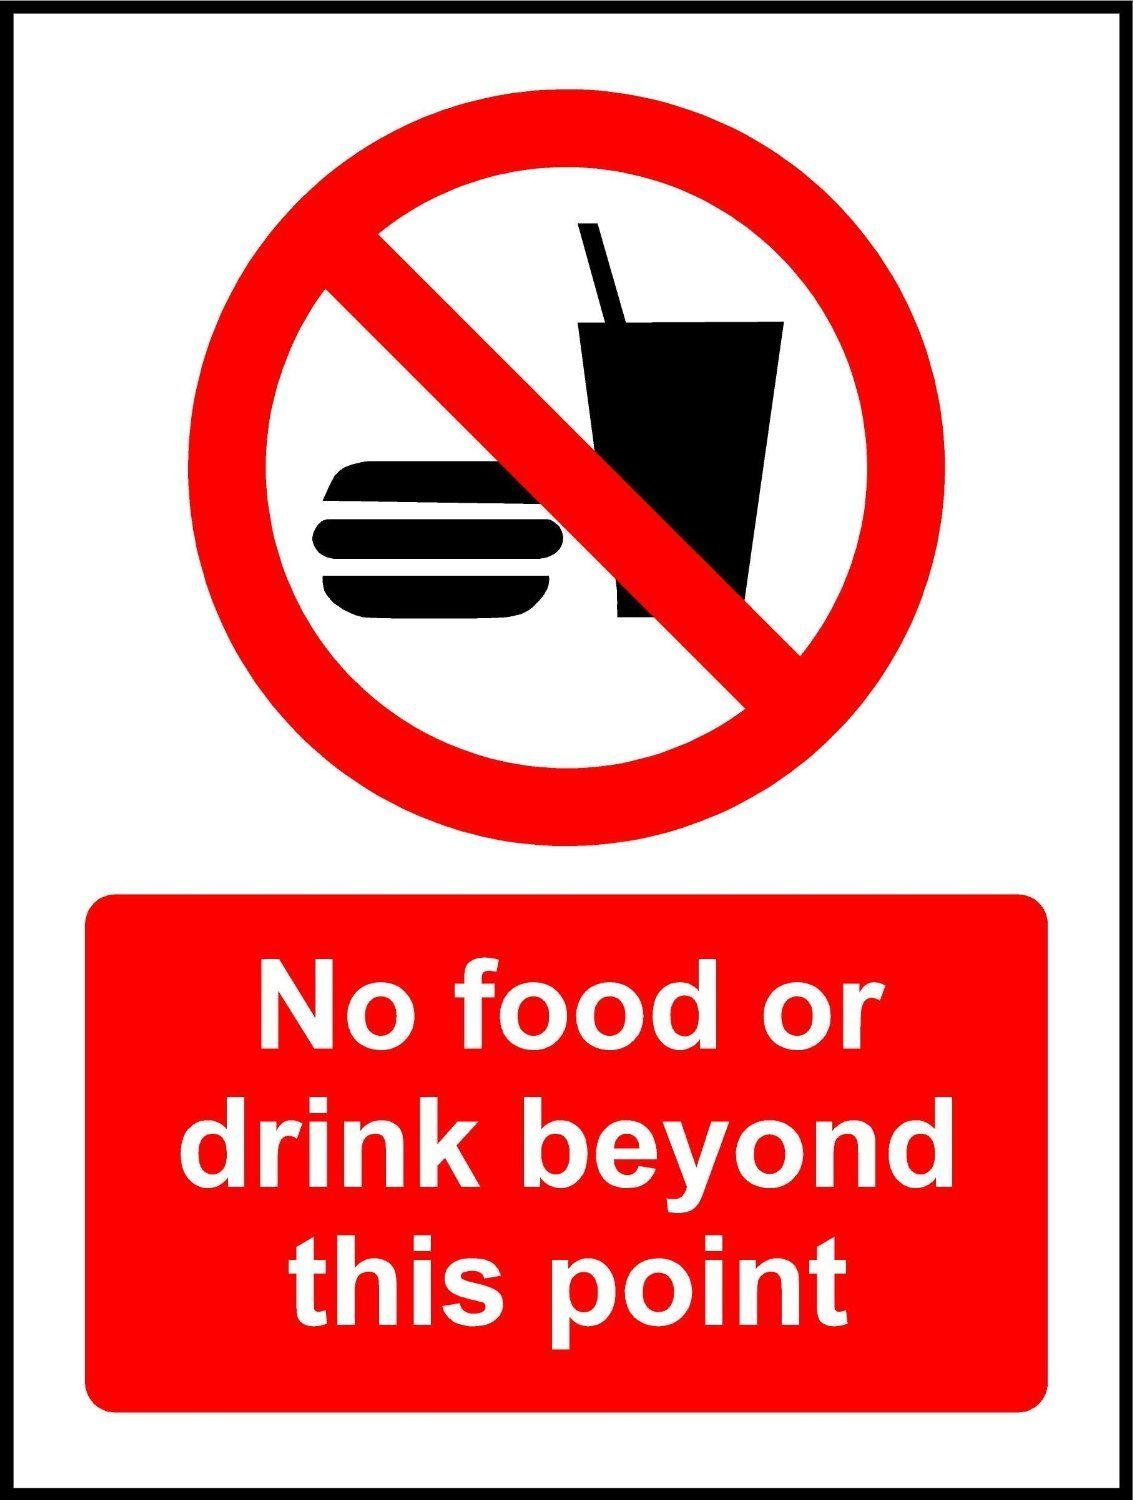 No Food Or Drink Beyond This Point Safety Sign - Self adhesive sticker 200mm x 150mm